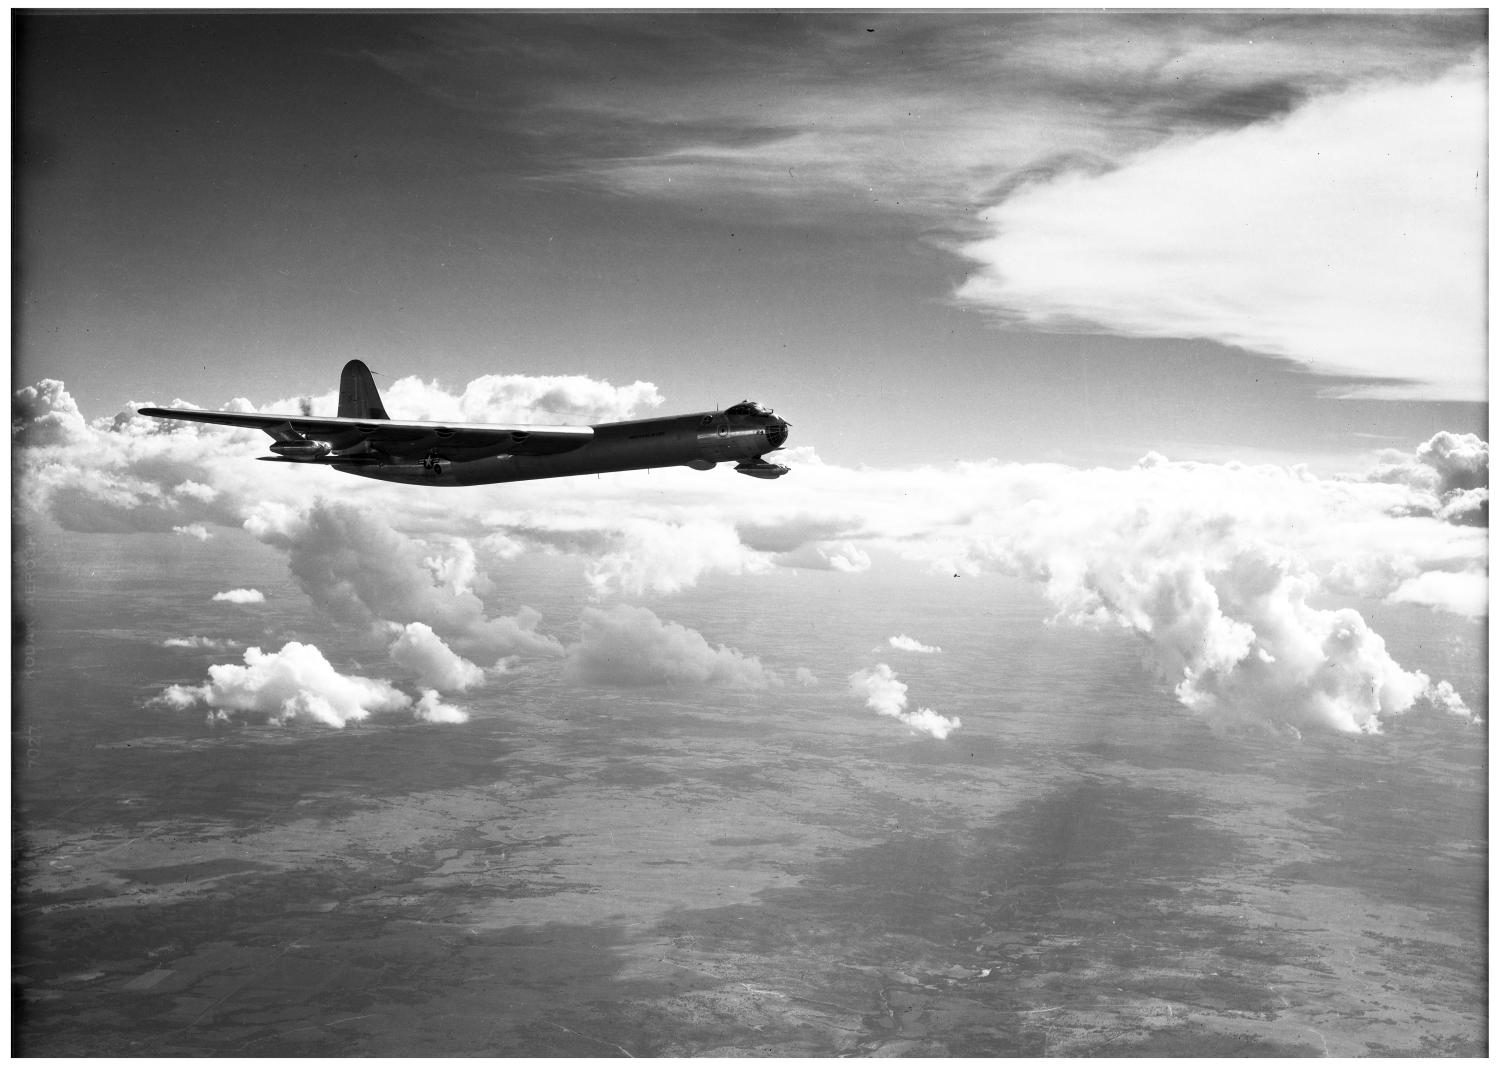 B-36D No. 93 in flight                                                                                                      [Sequence #]: 1 of 1